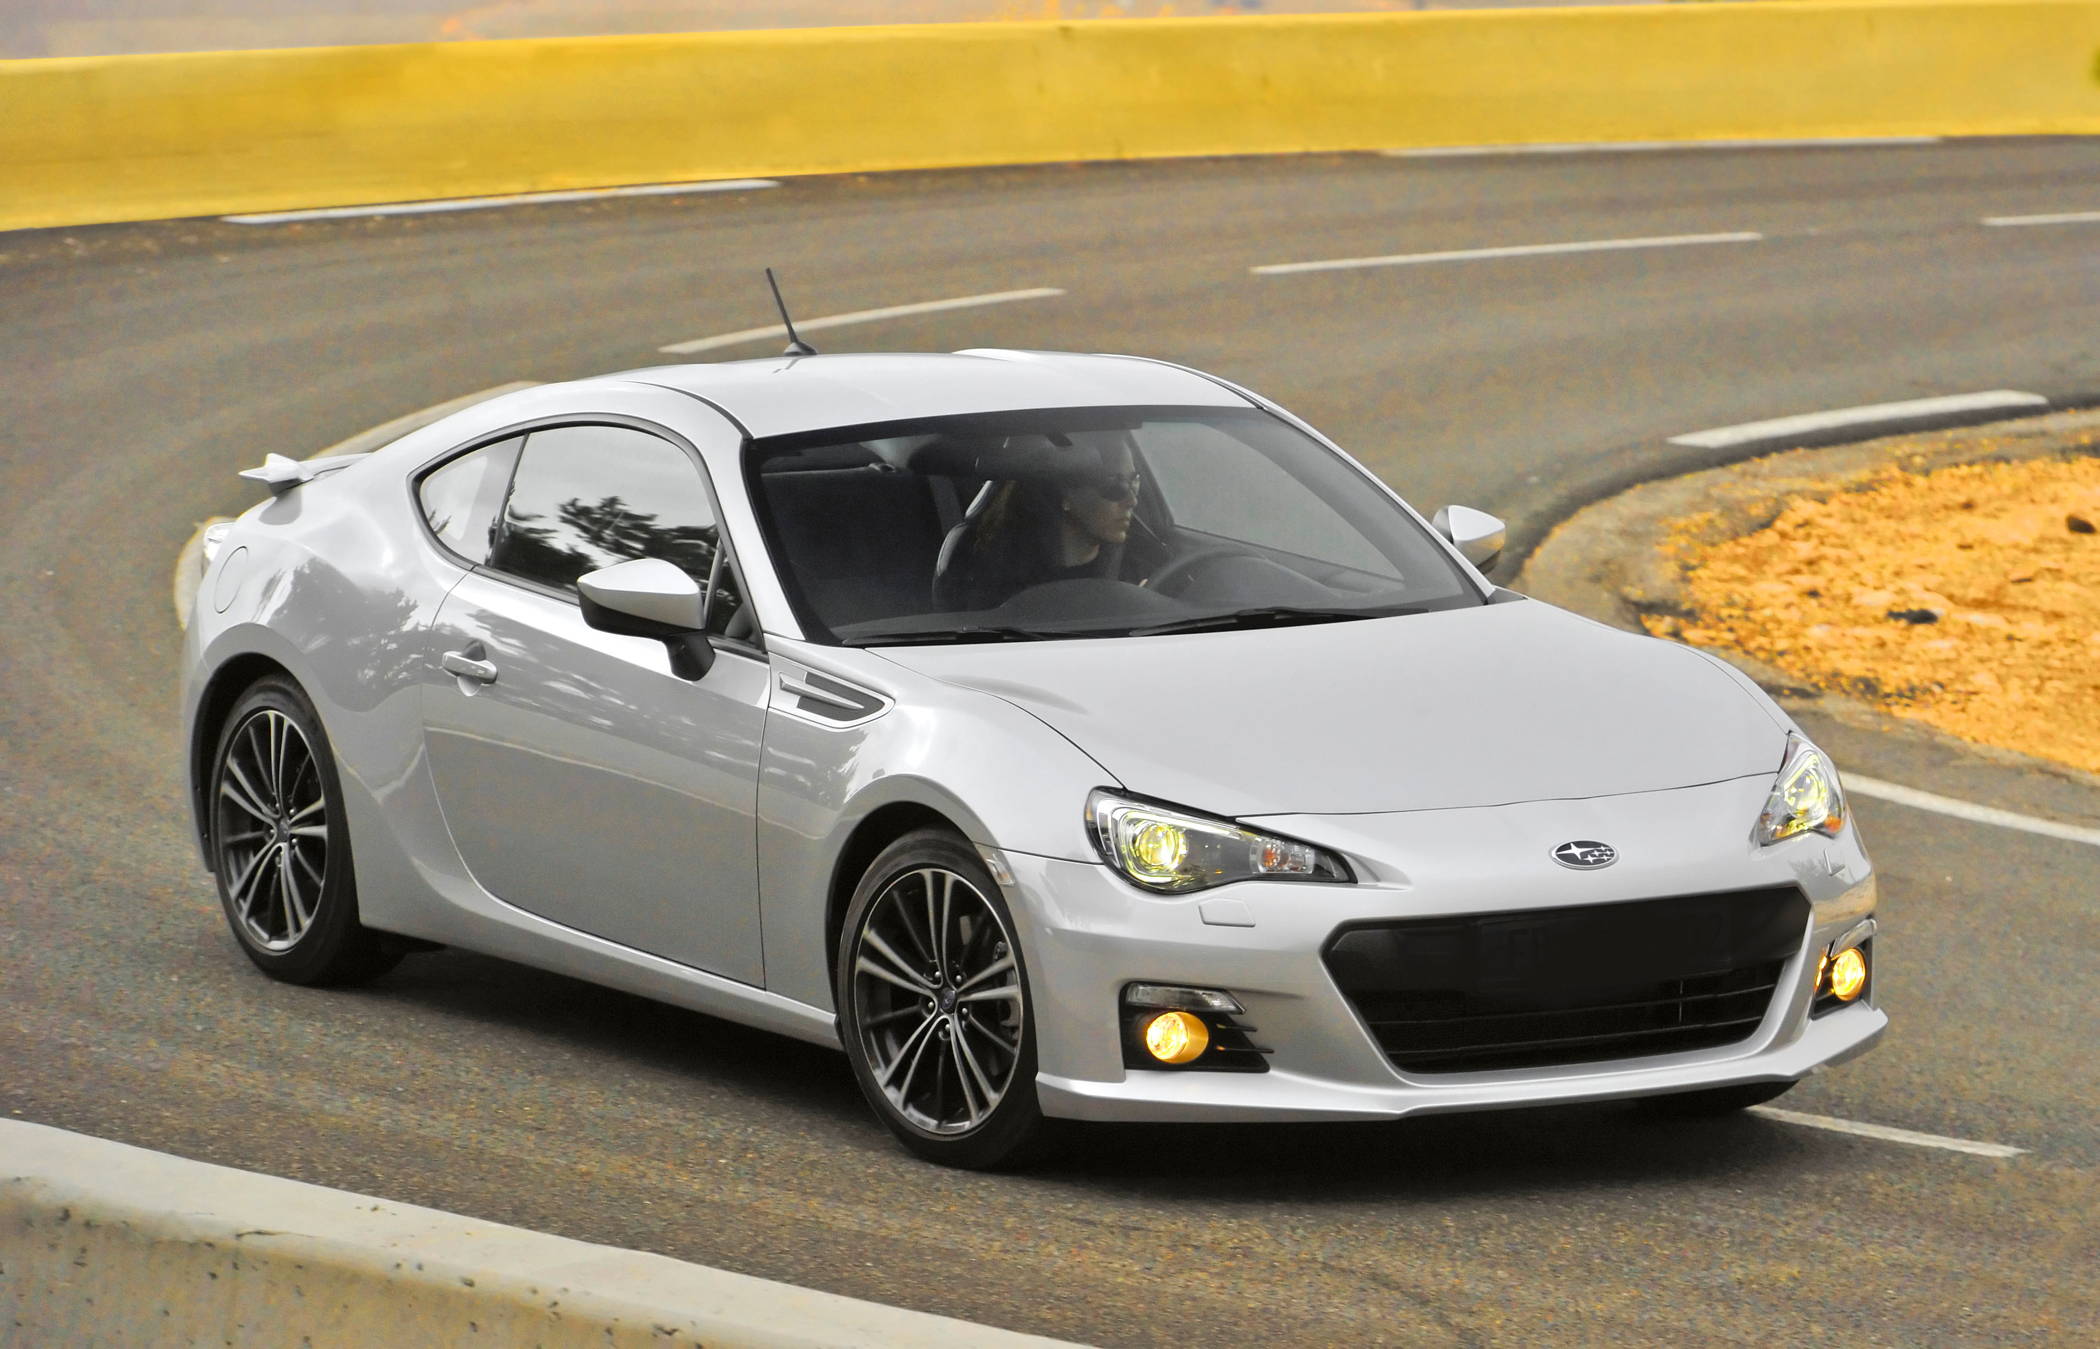 Manufacturer photo: Subaru developed the rear-wheel drive BRZ with the fundamentals of sports car design in mind: low vehicle weight, an ultra-low center of gravity and precision steering